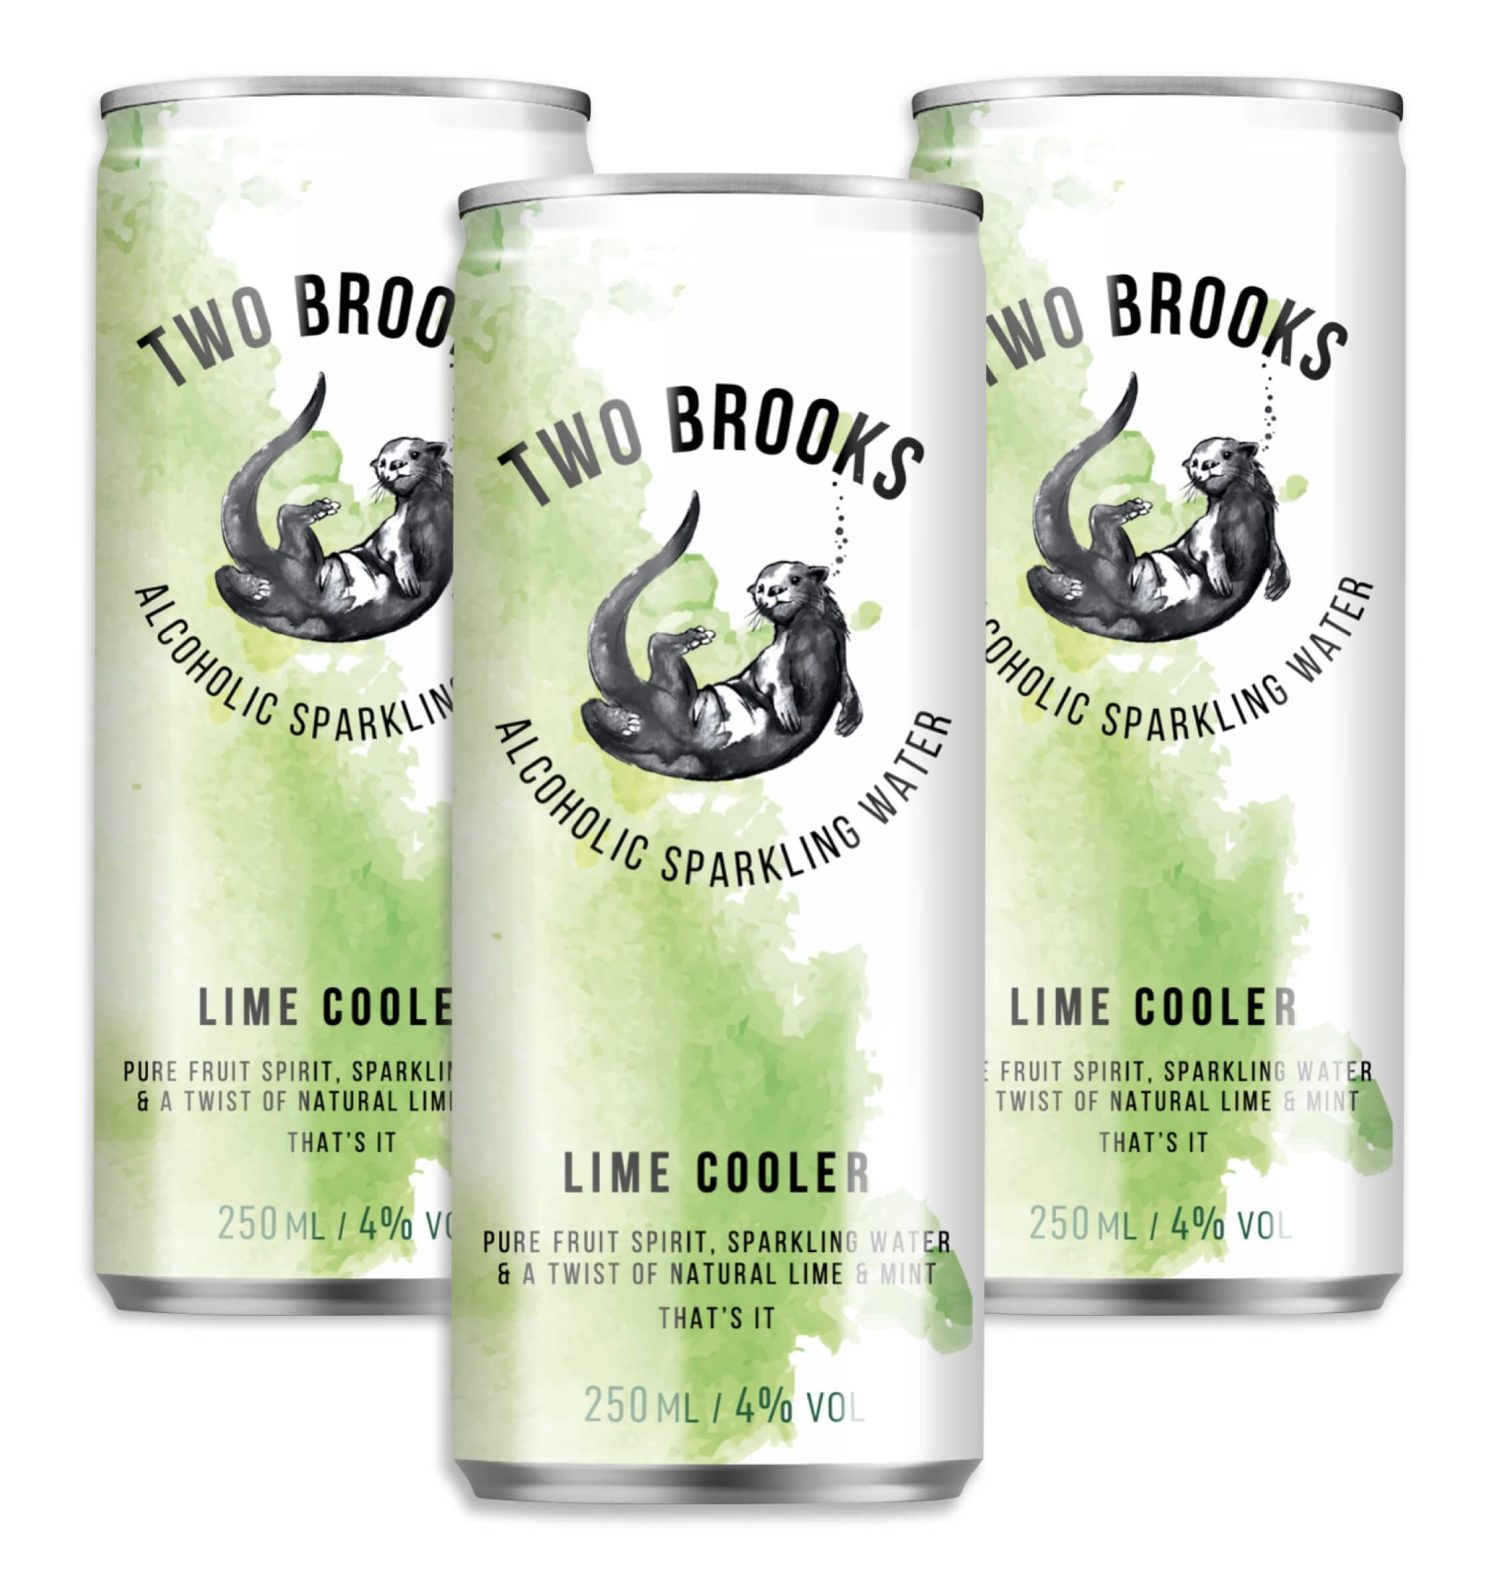 Two Brooks Alcoholic Sparkling Water - Lime Cooler